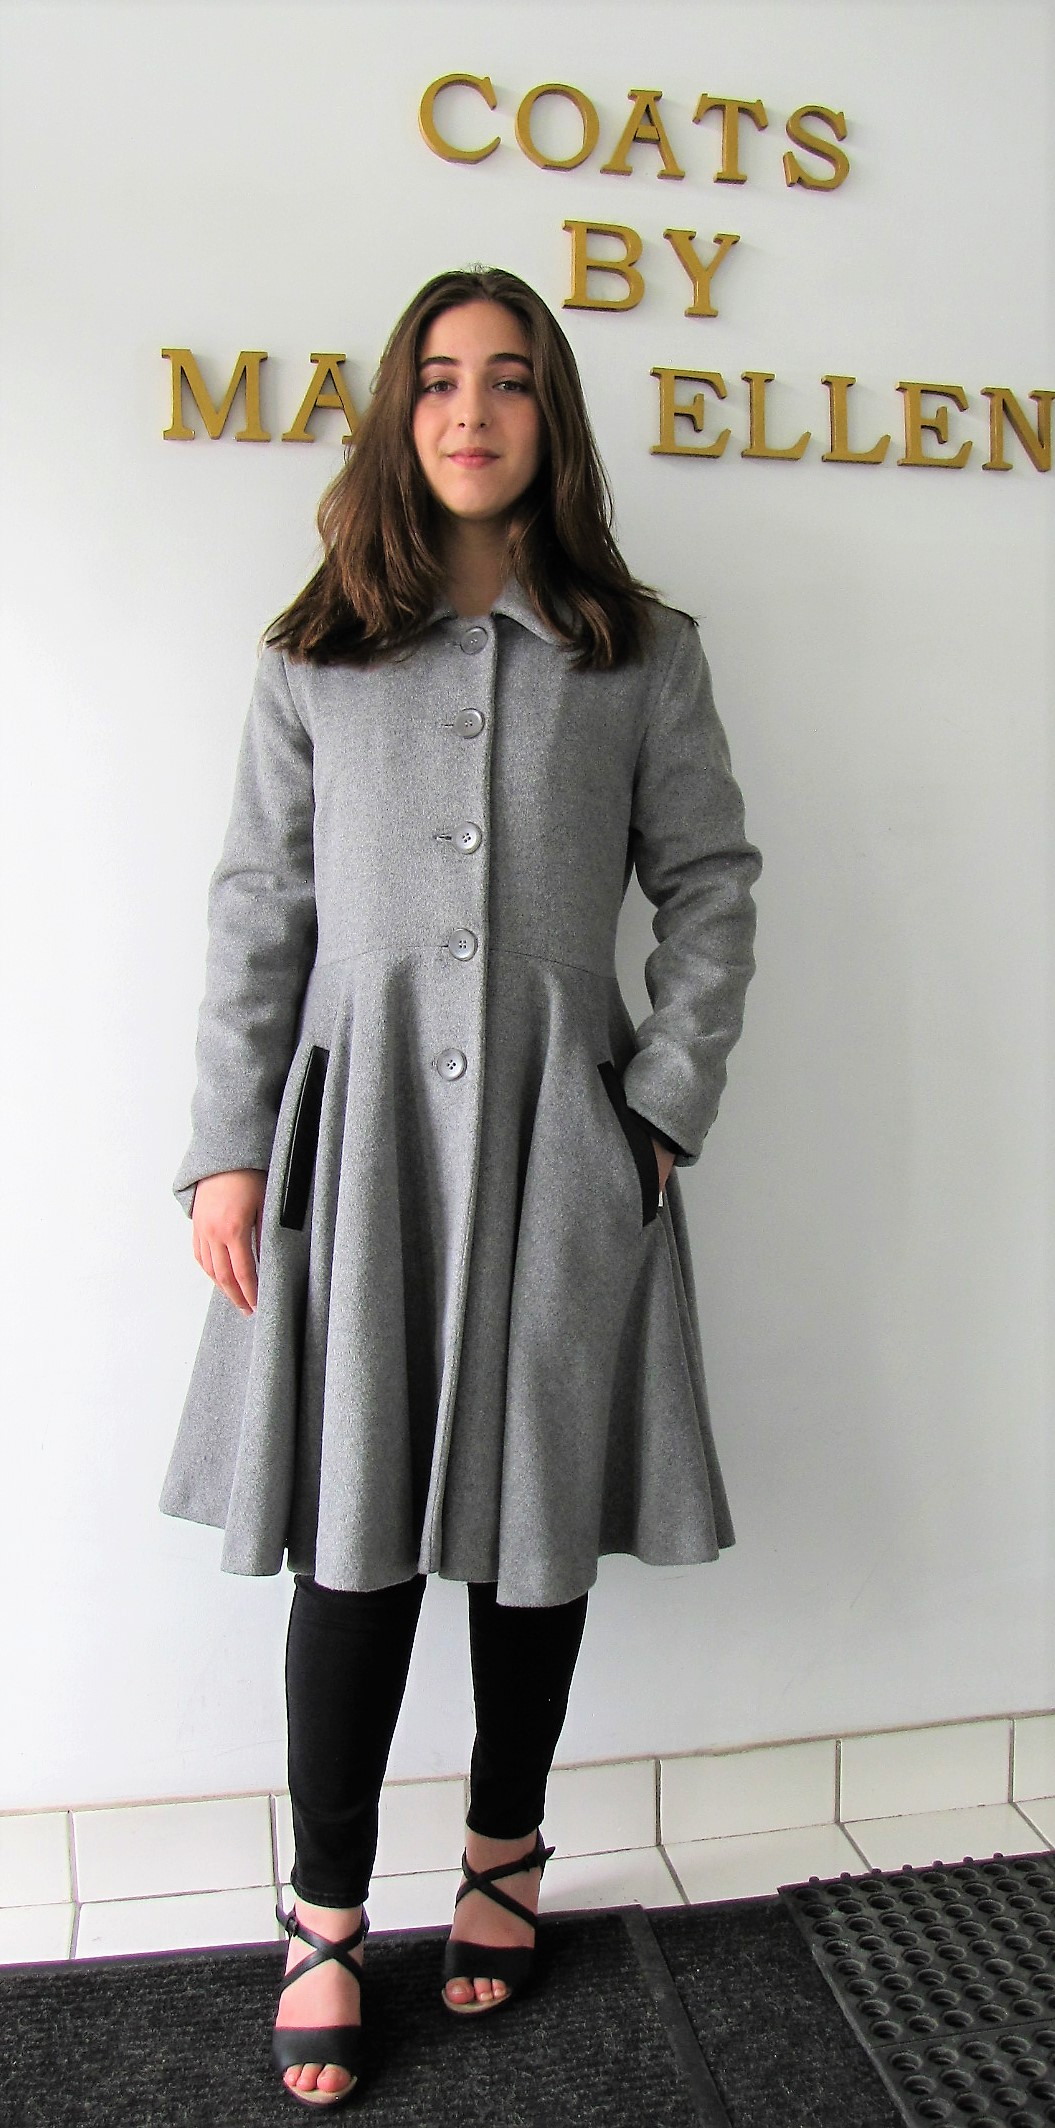 Style #10291-7  Smoke Grey  50% Cashmere/ Wool  Features: Feminine and elegant.  Inspired by the early 1950's.  Put this coat on and you'll feel just like a princess! Genuine Lambskin Leather Trim Chamois lined. Extra buttons included.  In-Stock Colours: Smoke Grey, Houndstooth, Winter White, Black or can be custom made in the colour of your choice.  Various Fabric: Cashmere or Cashmere Blend, Alpaca, 100% Pure Virgin Wool or can be custom made  in the fabric of your choice.  Size: S,M,L  Price: $ 650 and up